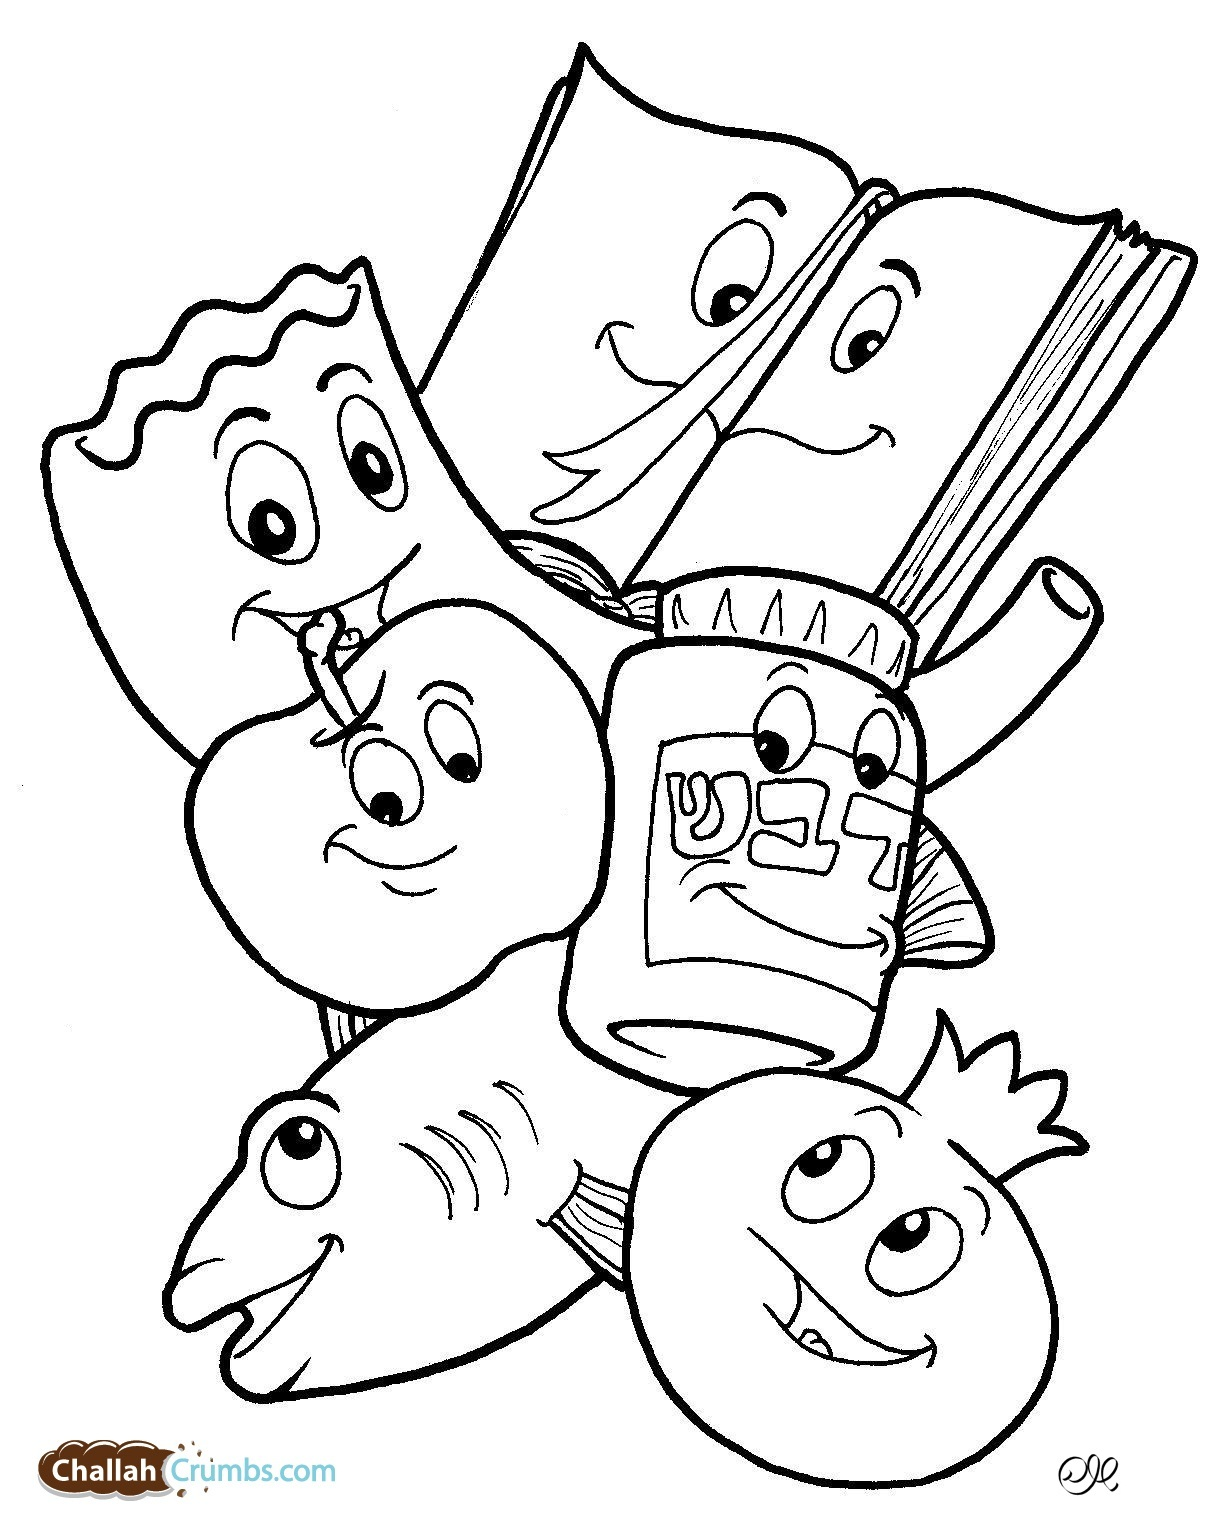 challah coloring pages - photo#13